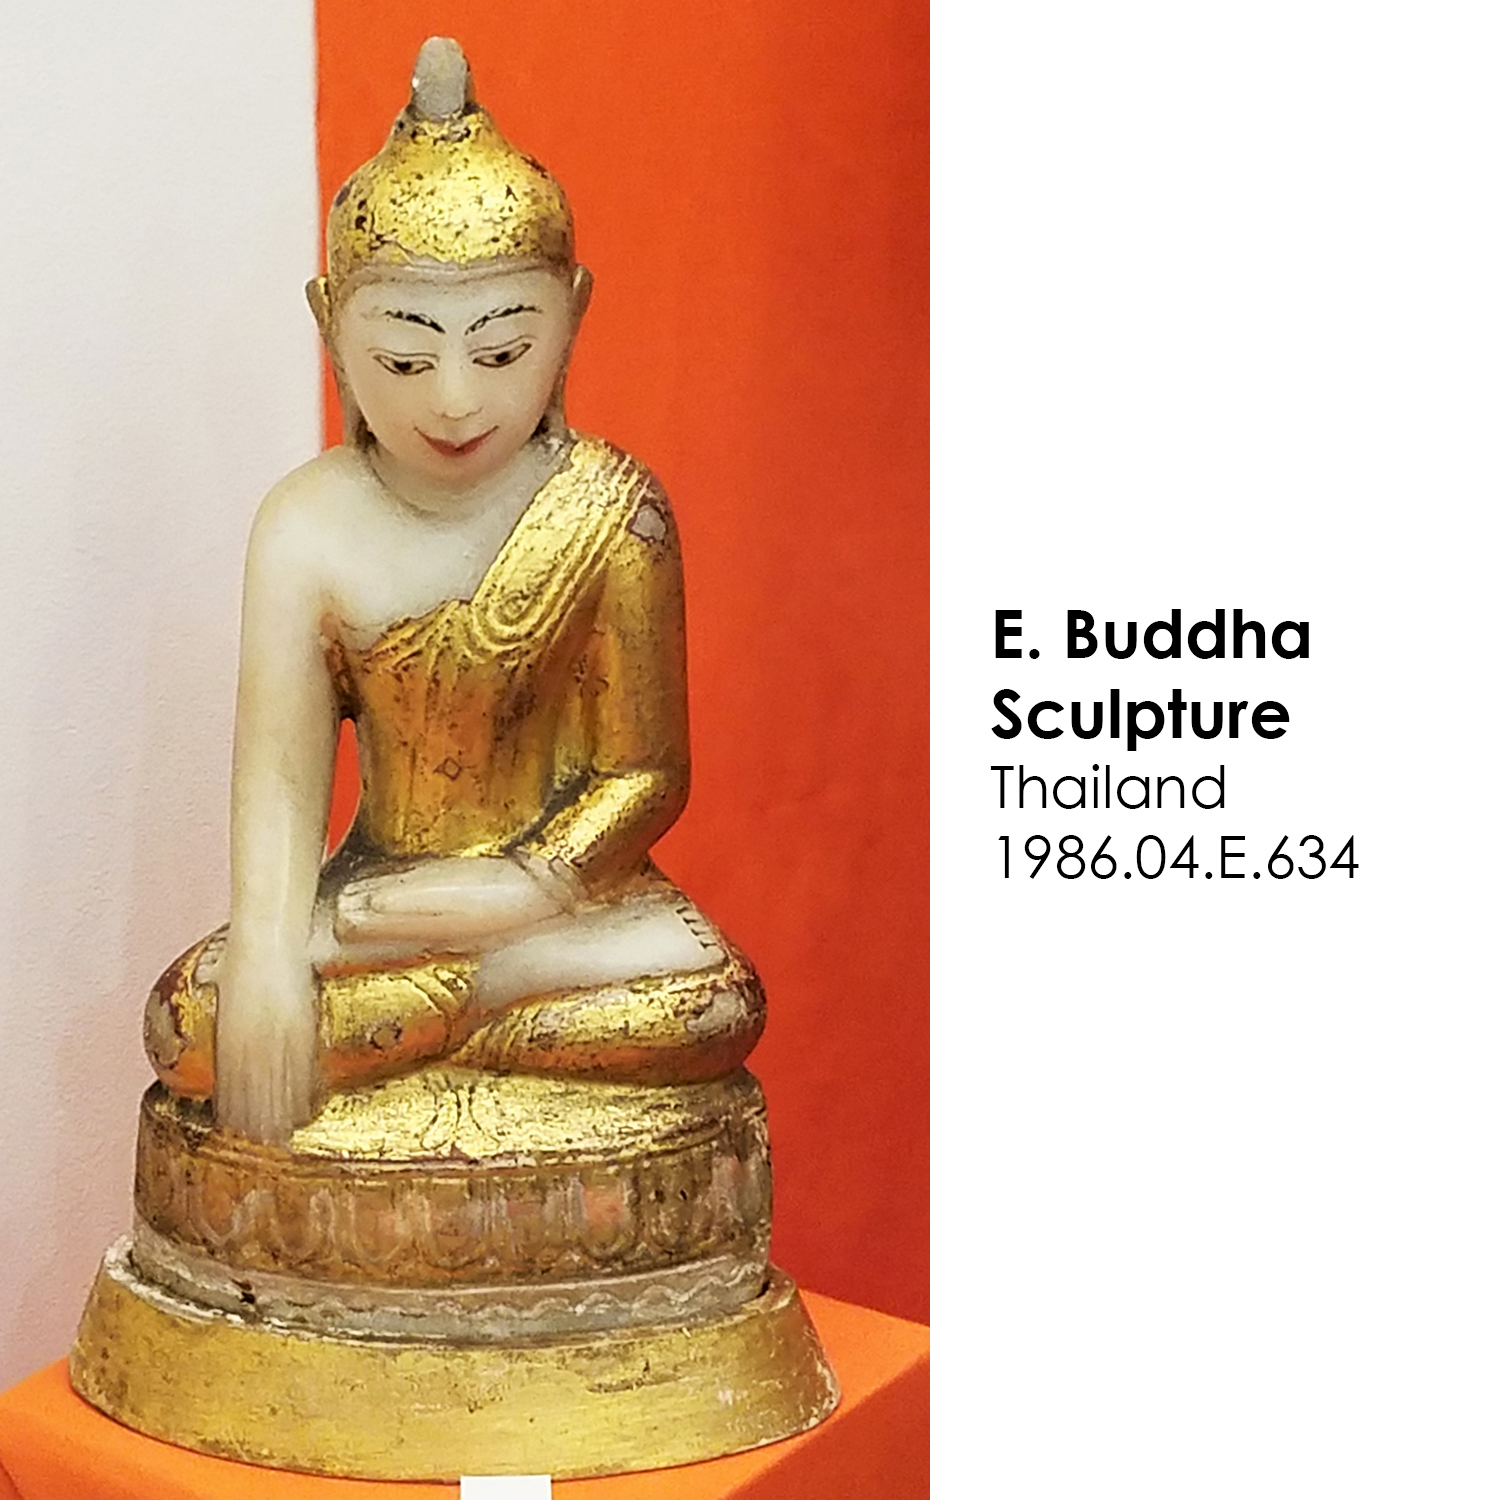 Buddhist sculpture from Thailand